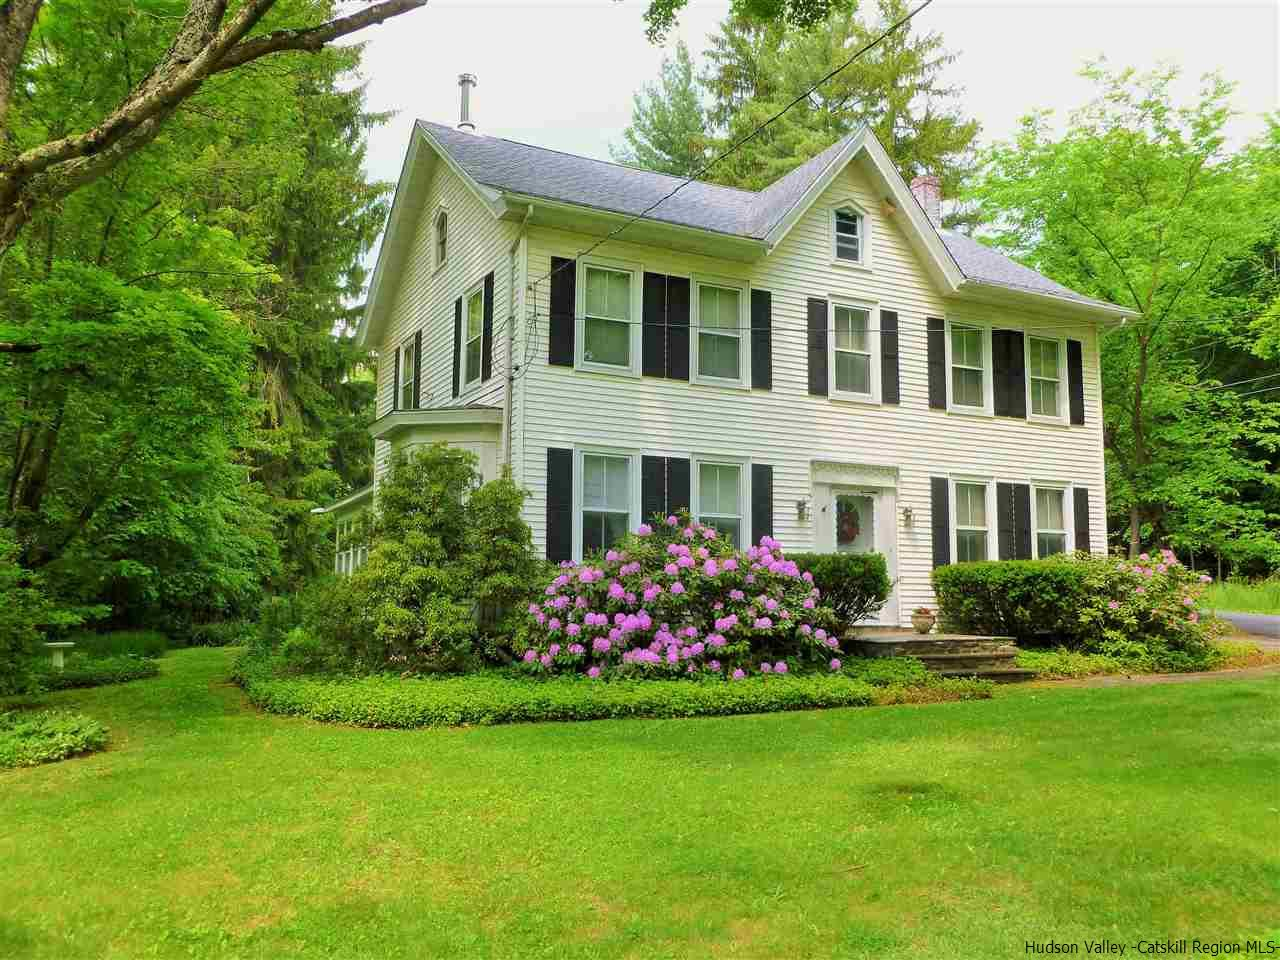 Single Family Home for Sale at 5 Anderson Road 5 Anderson Road Gardiner, New York 12525 United States